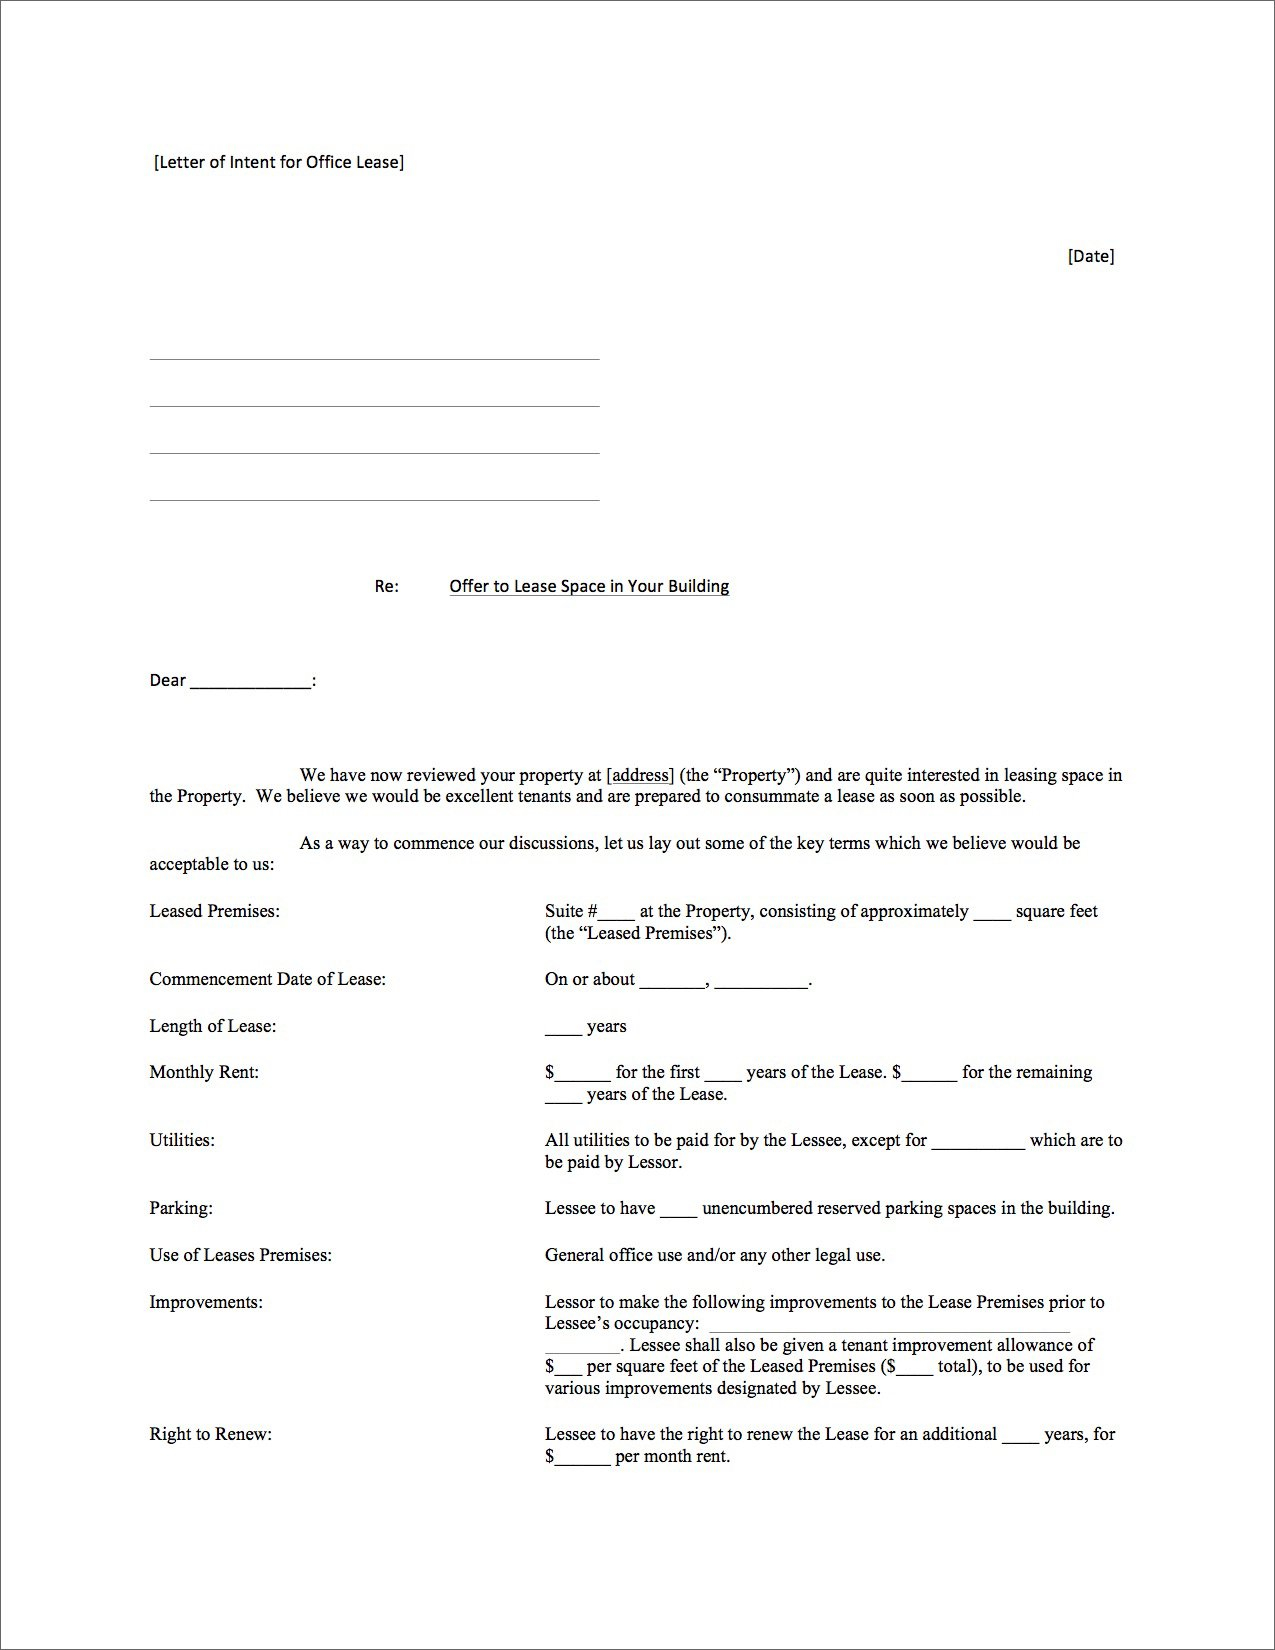 Lease Commencement Letter Template - Letter Intent for Mercial Lease Sample Property to Real Estate